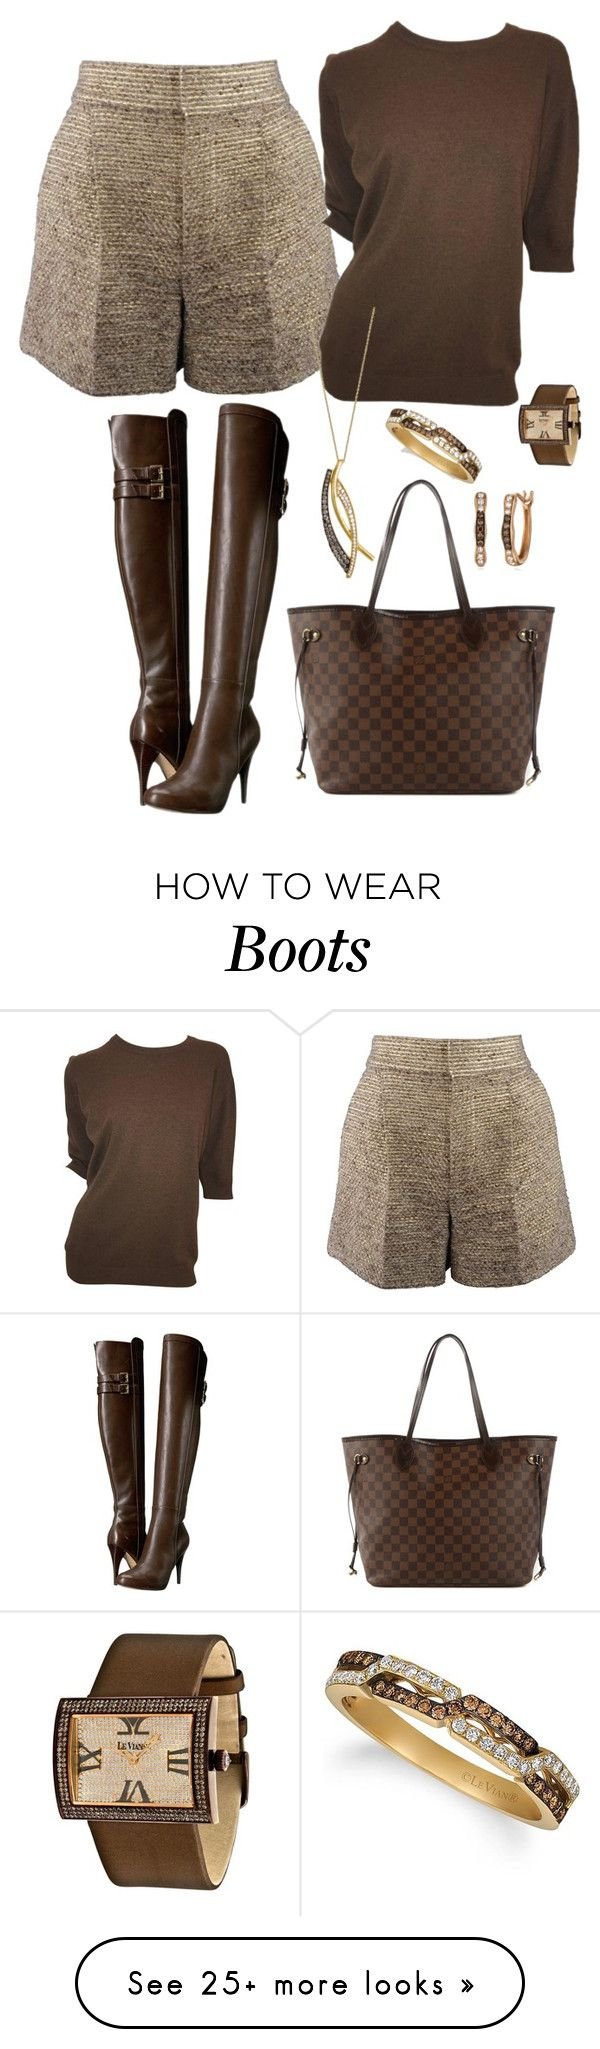 """""""shorts and boots"""" by mynextlife on Polyvore featuring Chloé, MICHAEL Michael Kors, Chanel, Louis Vuitton and LE VIAN"""